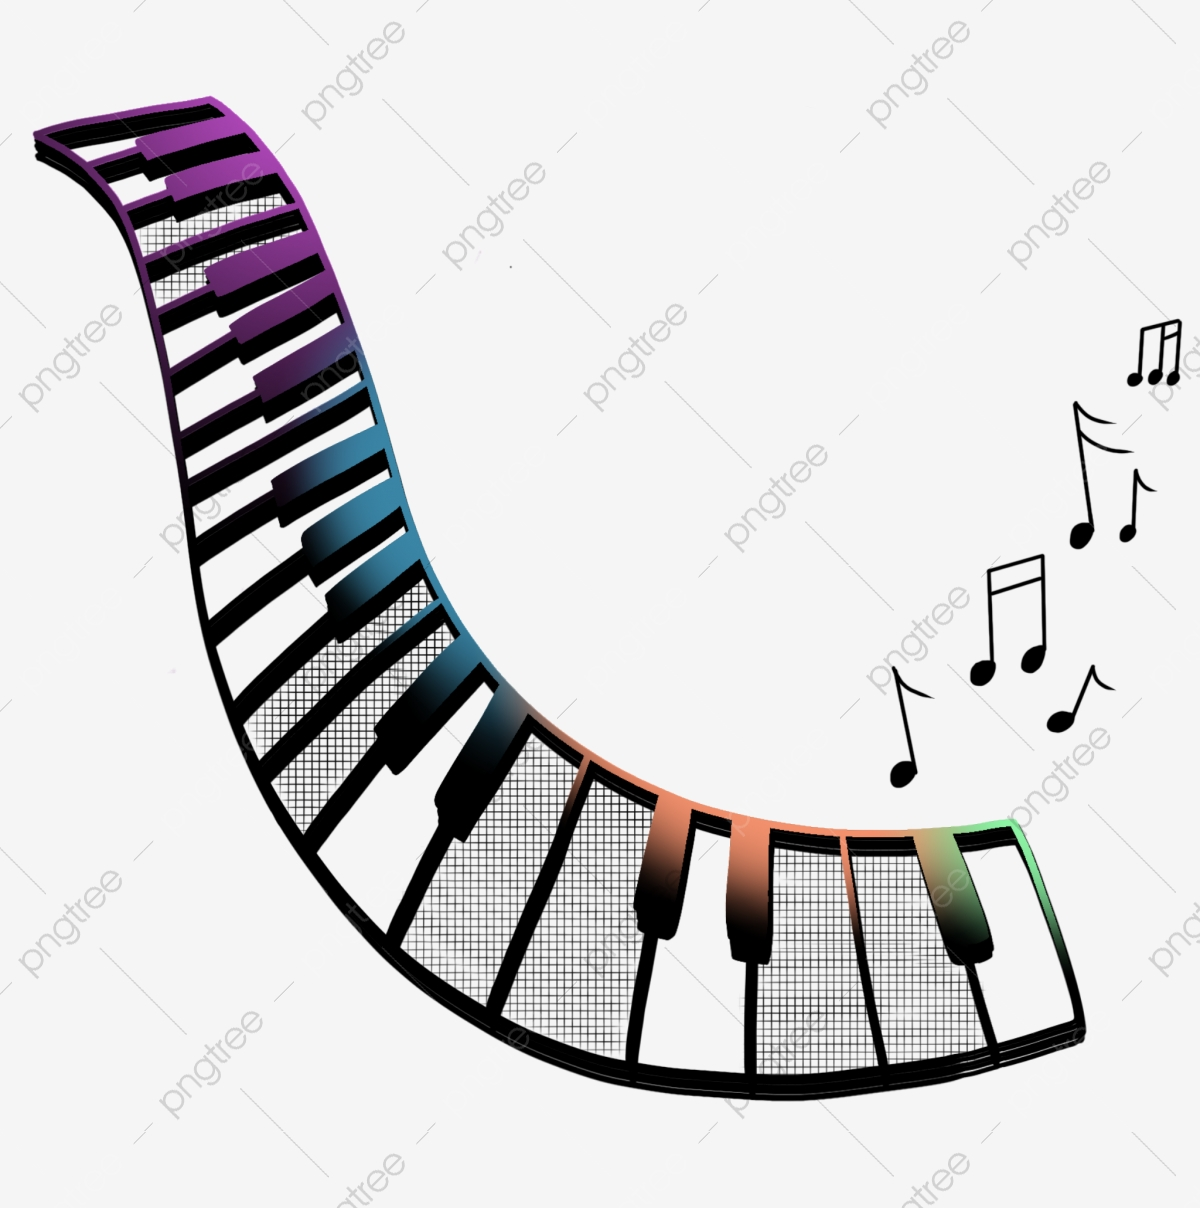 Cartoon Music Piano Key Illustration Music Keys Notes Png Transparent Clipart Image And Psd File For Free Download